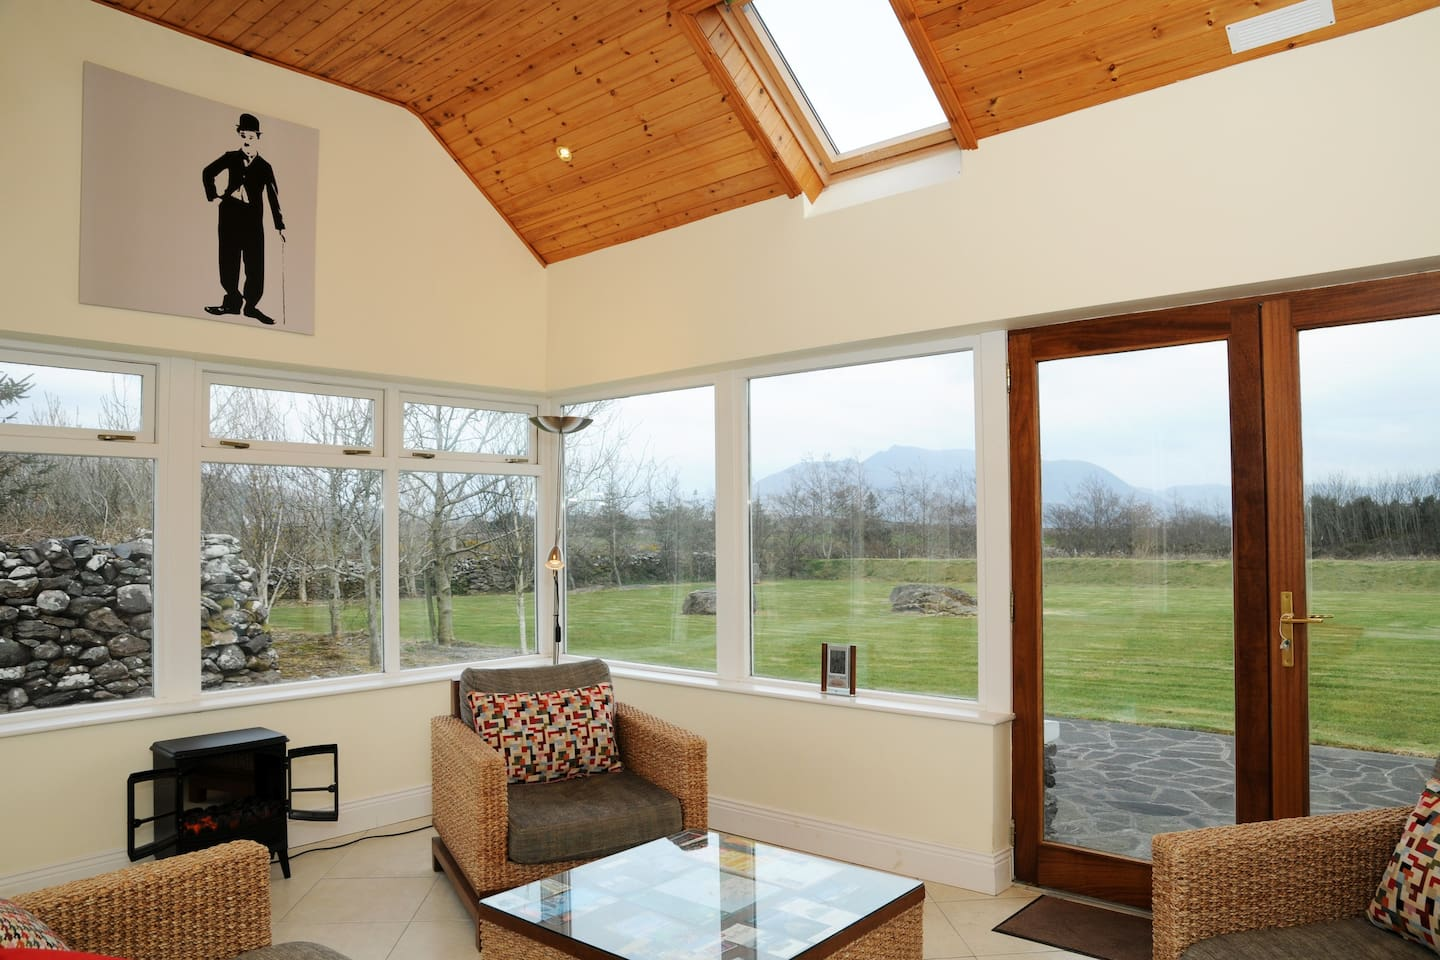 Sunroom off the kitchen overlooking the gardens and Kerry Mountains